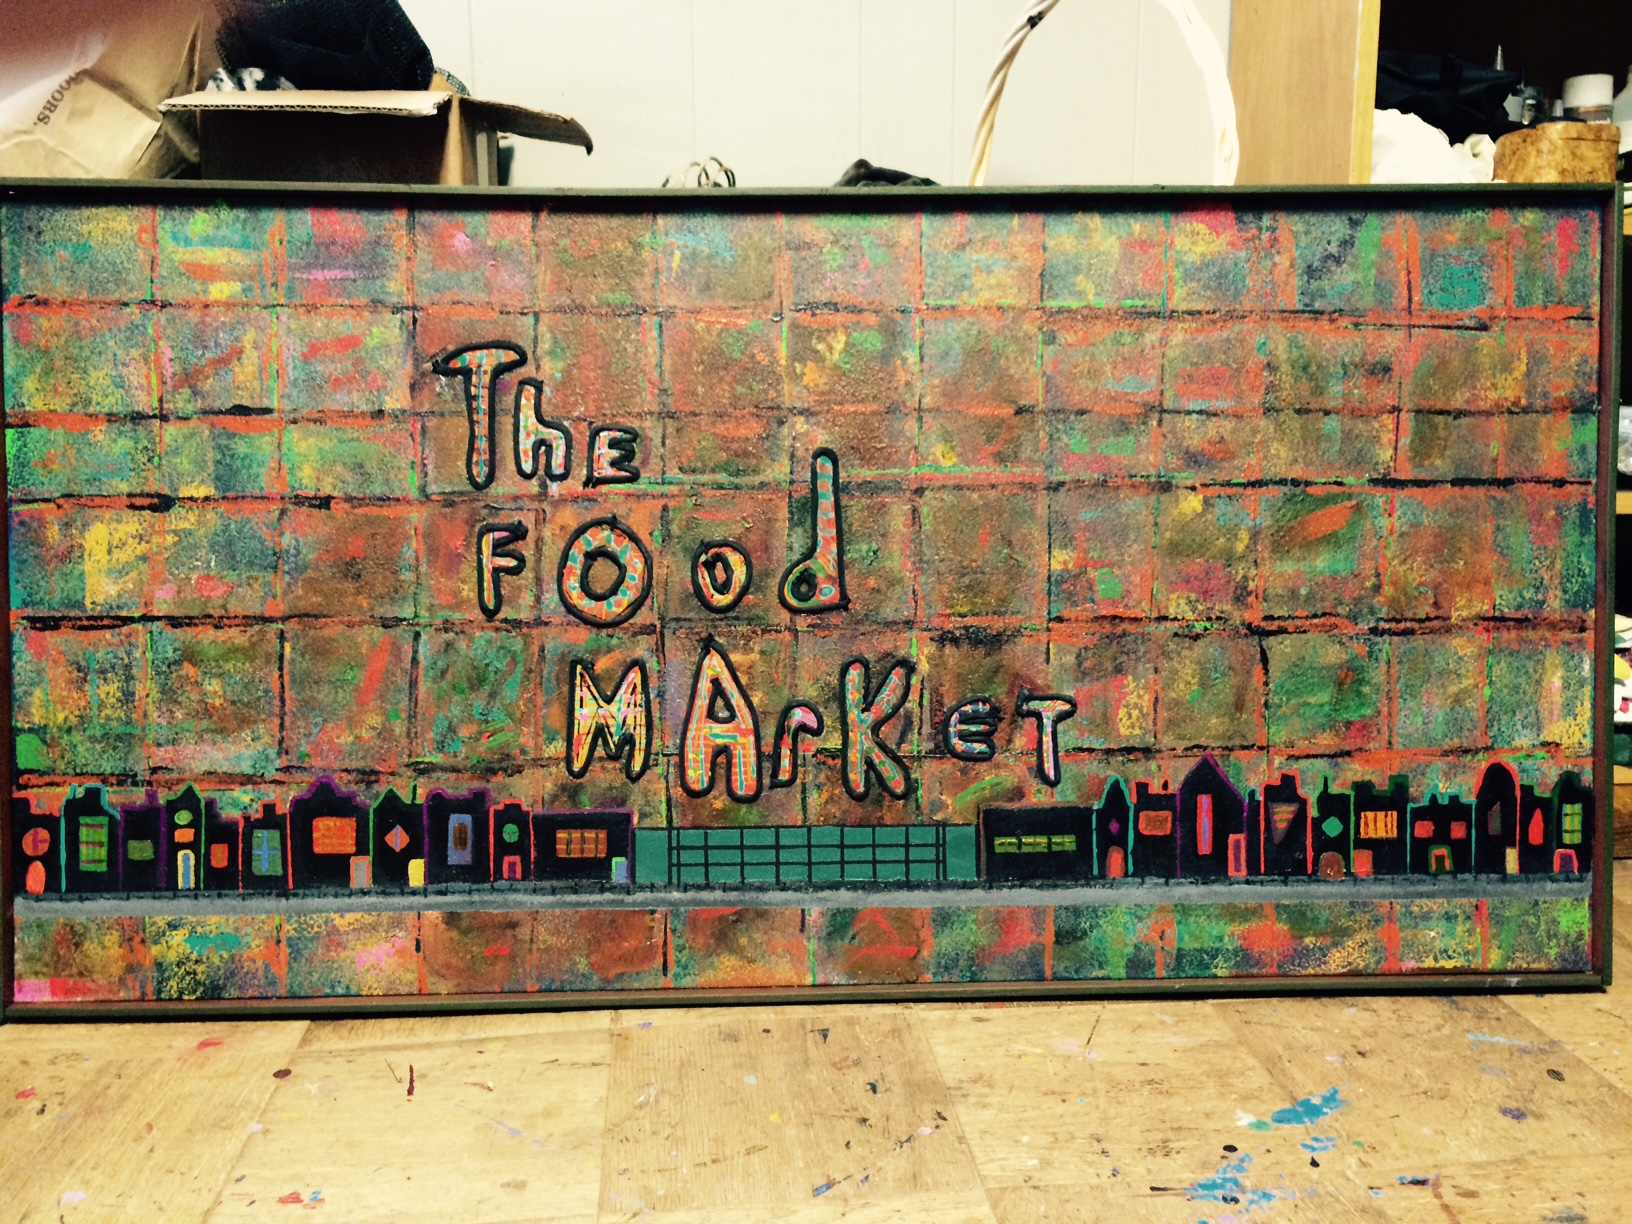 The Food Market 24x48